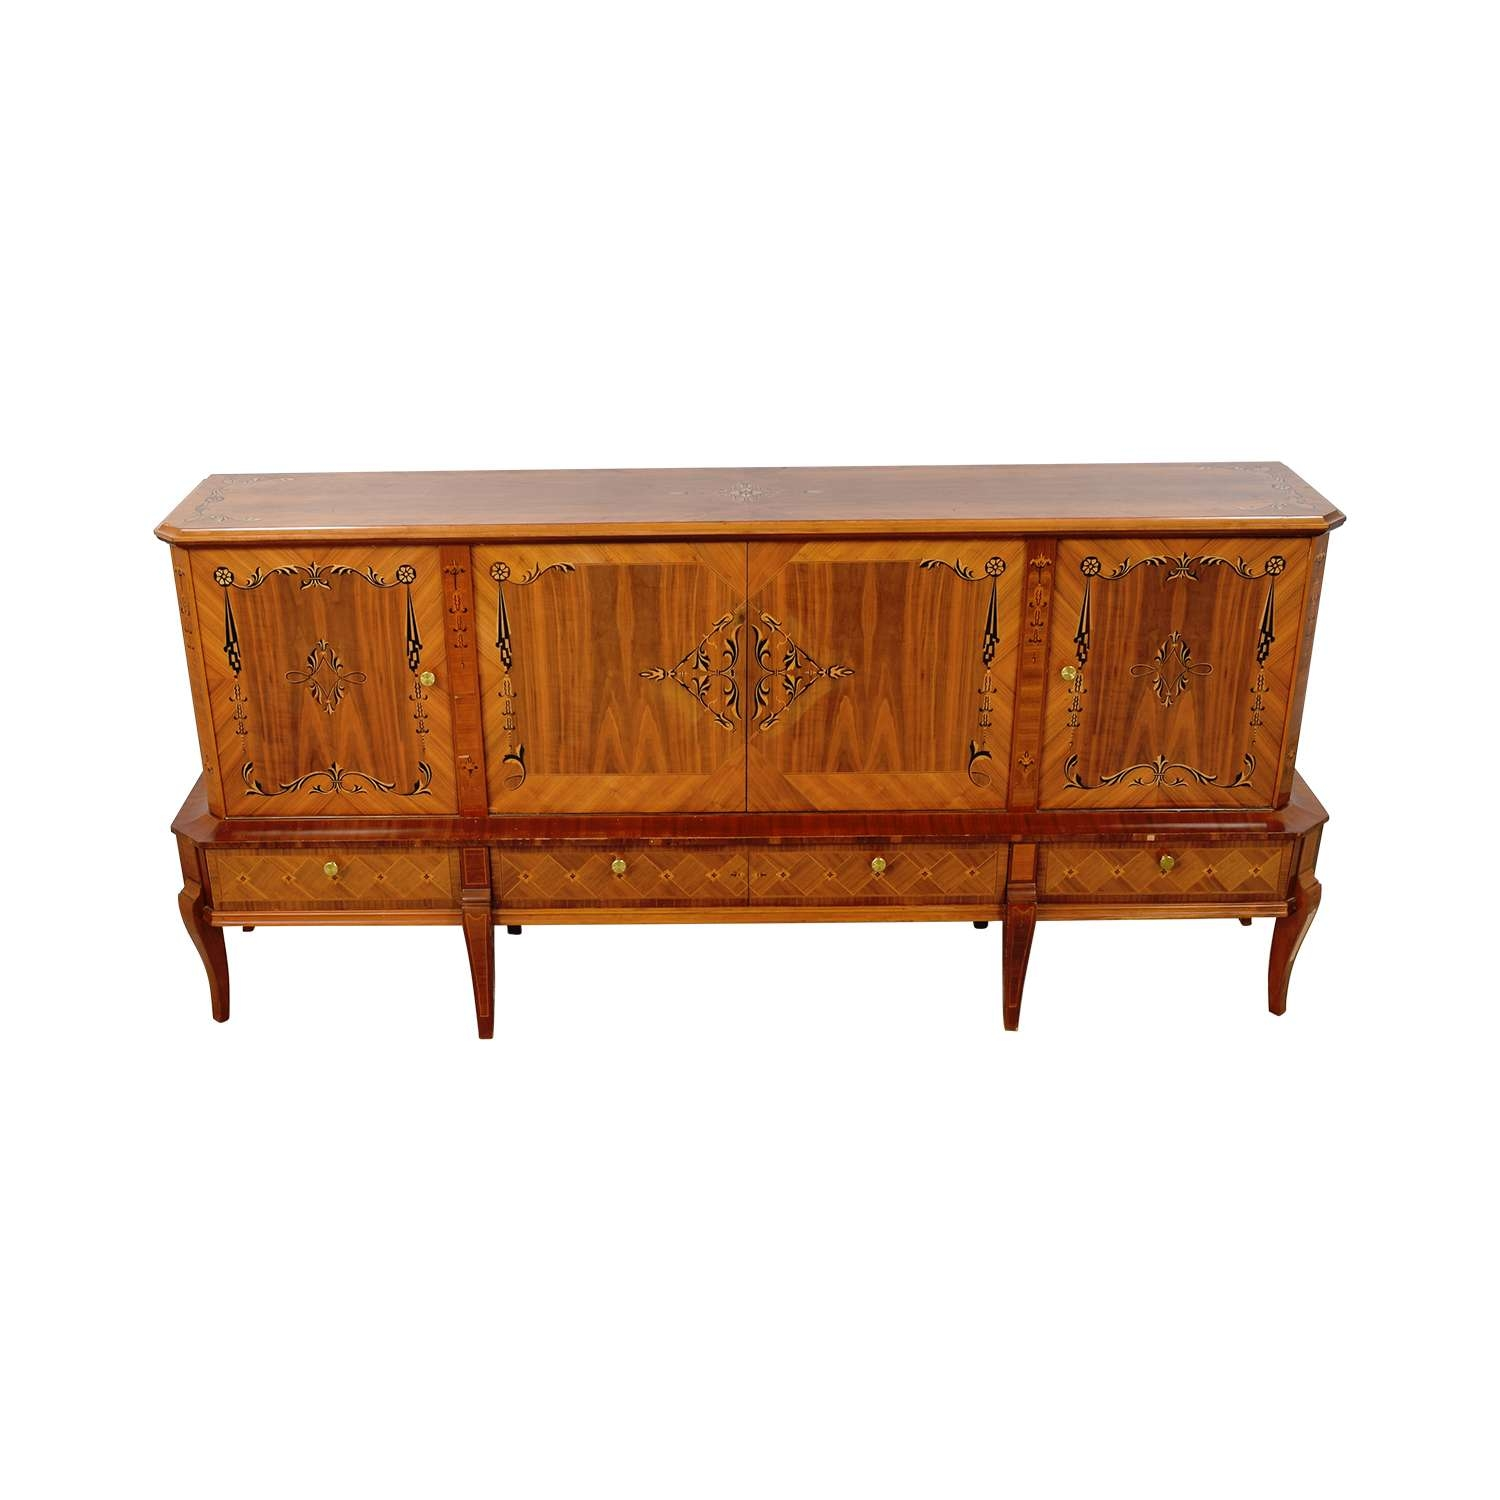 76% Off – Romanian Sheraton Solid Wood Sideboard / Storage With Regard To Solid Wood Sideboards (Gallery 15 of 20)